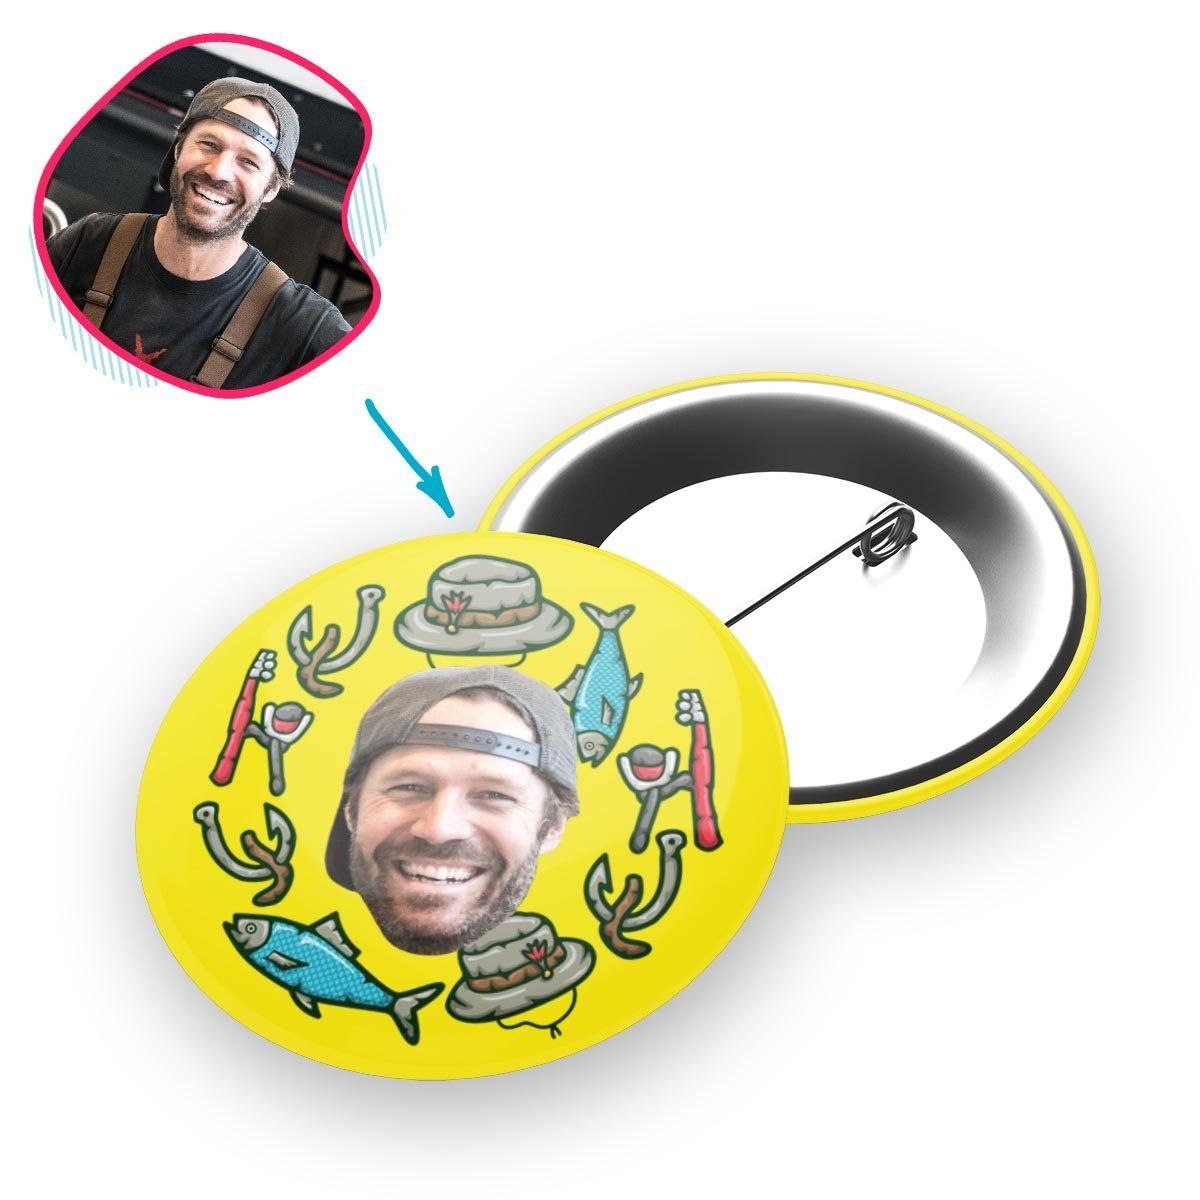 Yellow Fishing personalized pin with photo of face printed on it